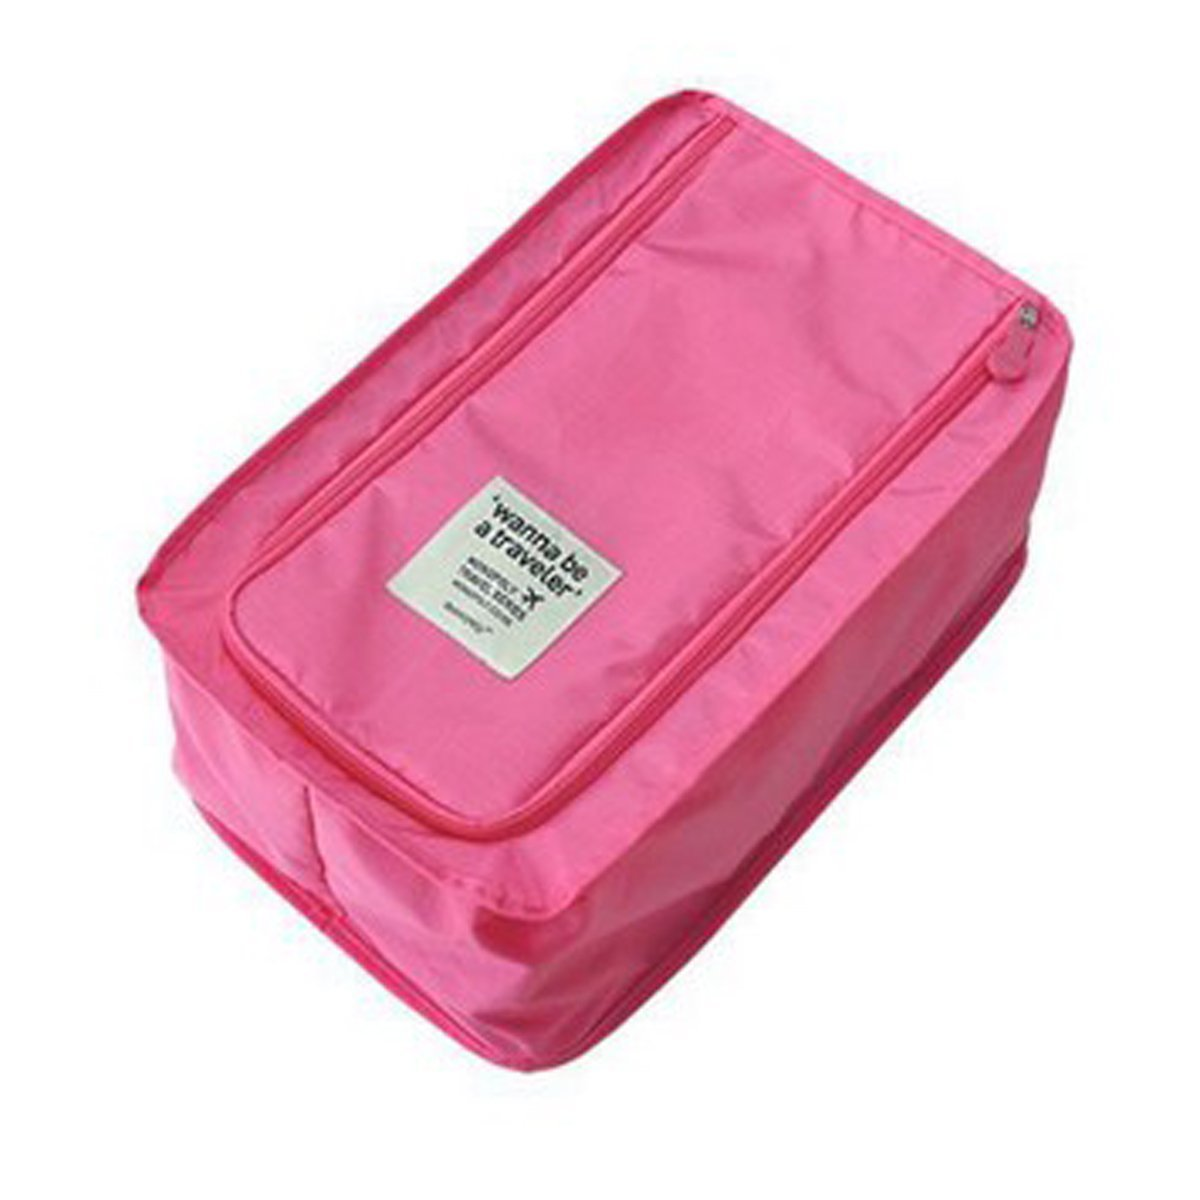 DEHANG Waterproof Nylon Ventilated Durable Portable Travel Shoes High Heel Boots Slippers Organiser Storage Bag for Travel Rosy